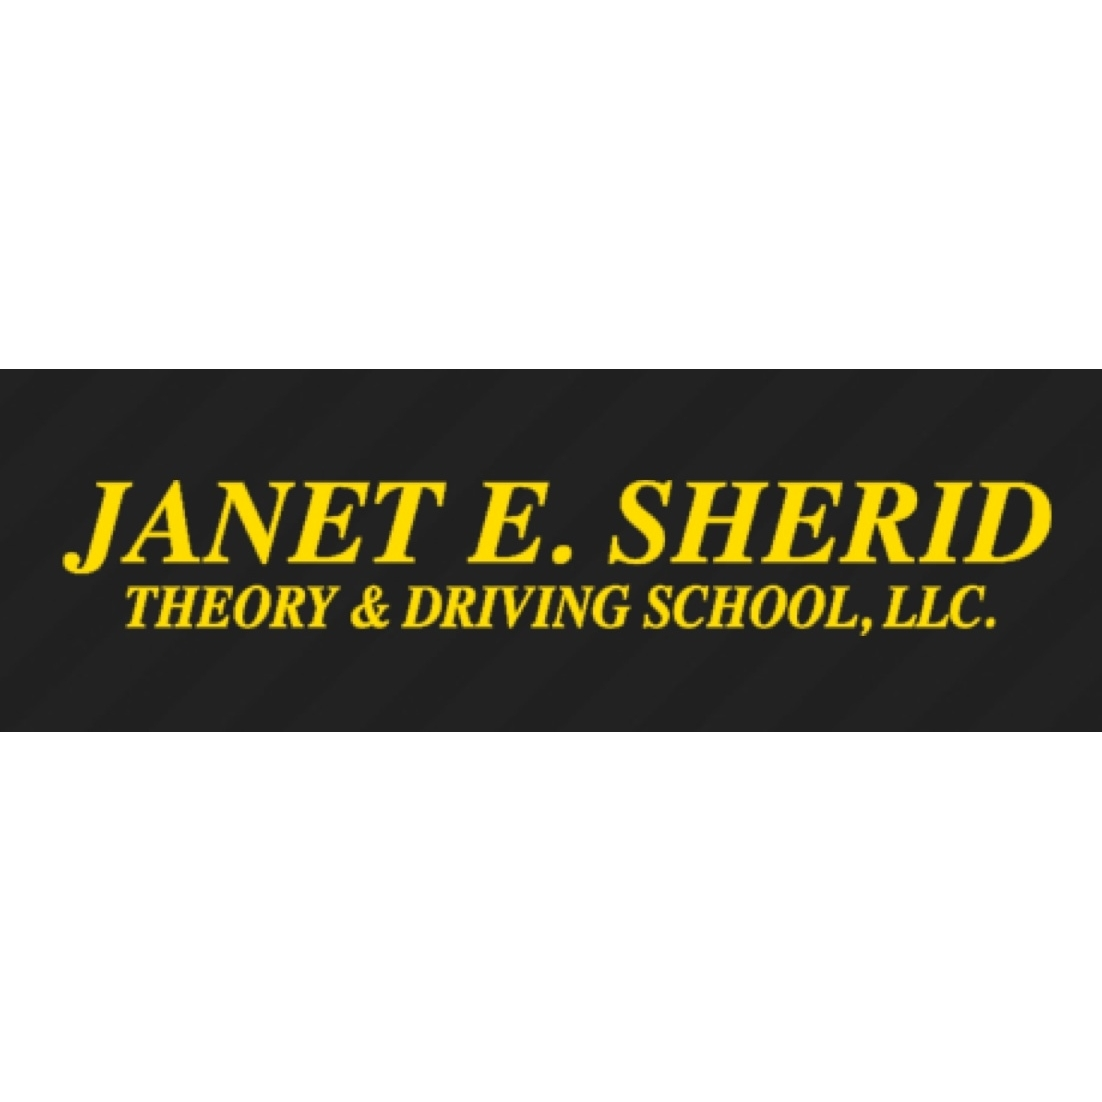 janet e sherid theory driving school llc coupons near me in greensburg 8coupons. Black Bedroom Furniture Sets. Home Design Ideas